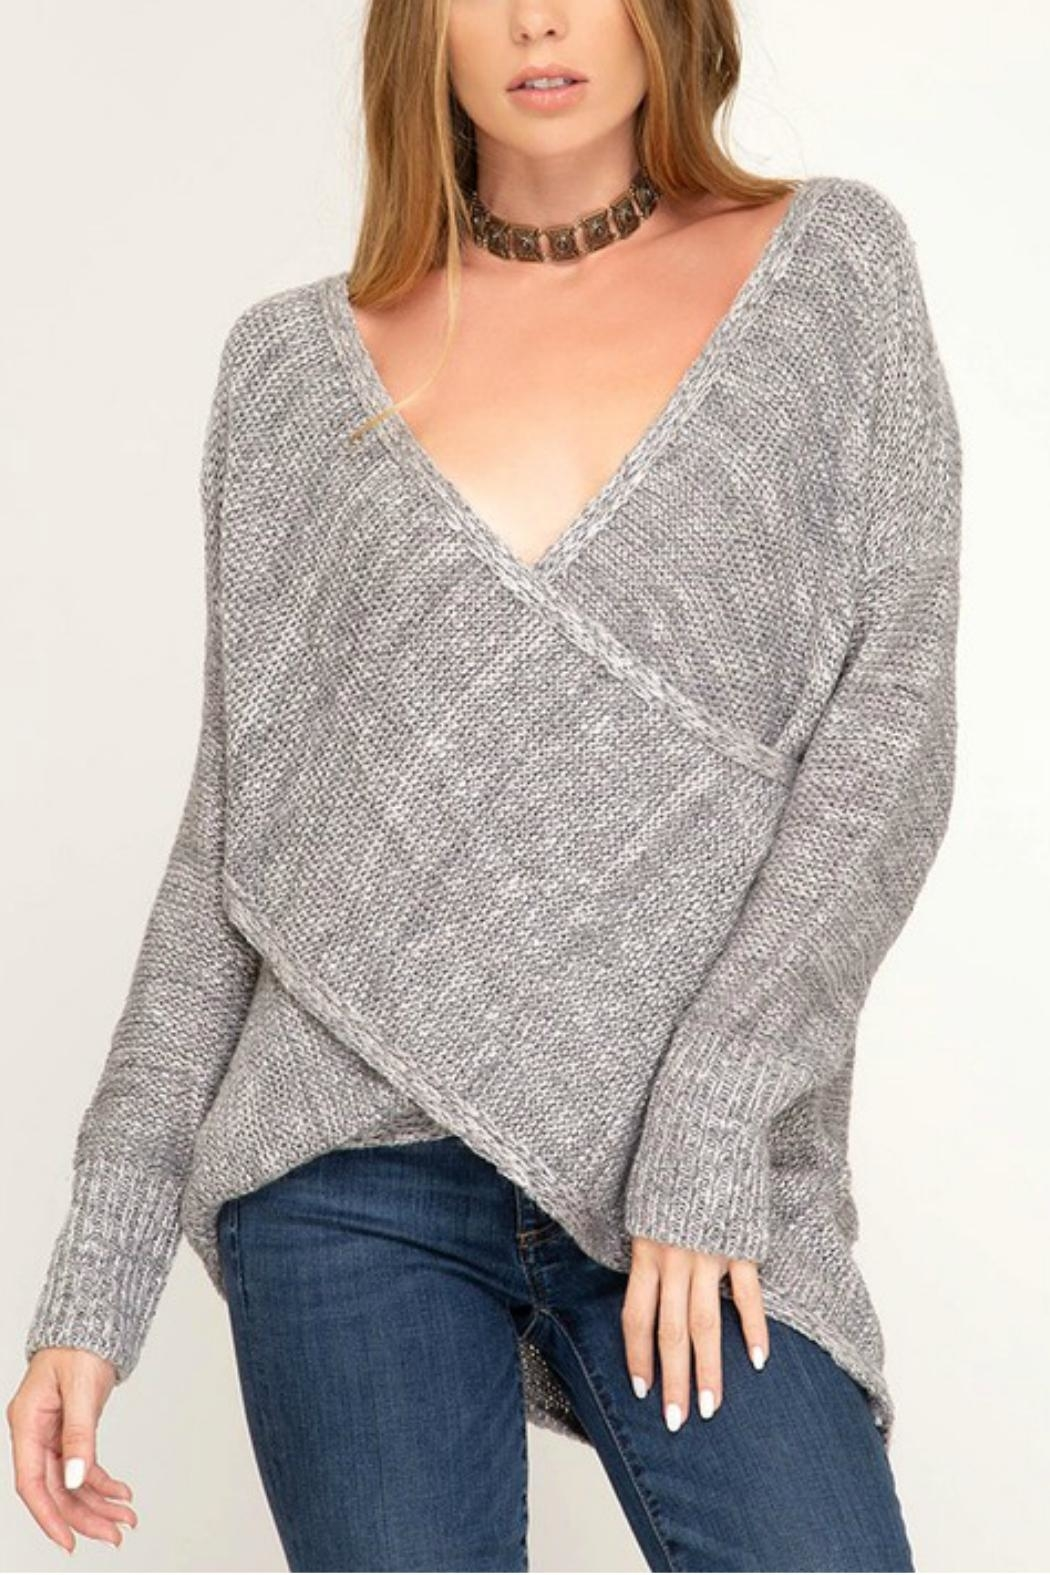 She + Sky Surplice Knit Sweater - Main Image